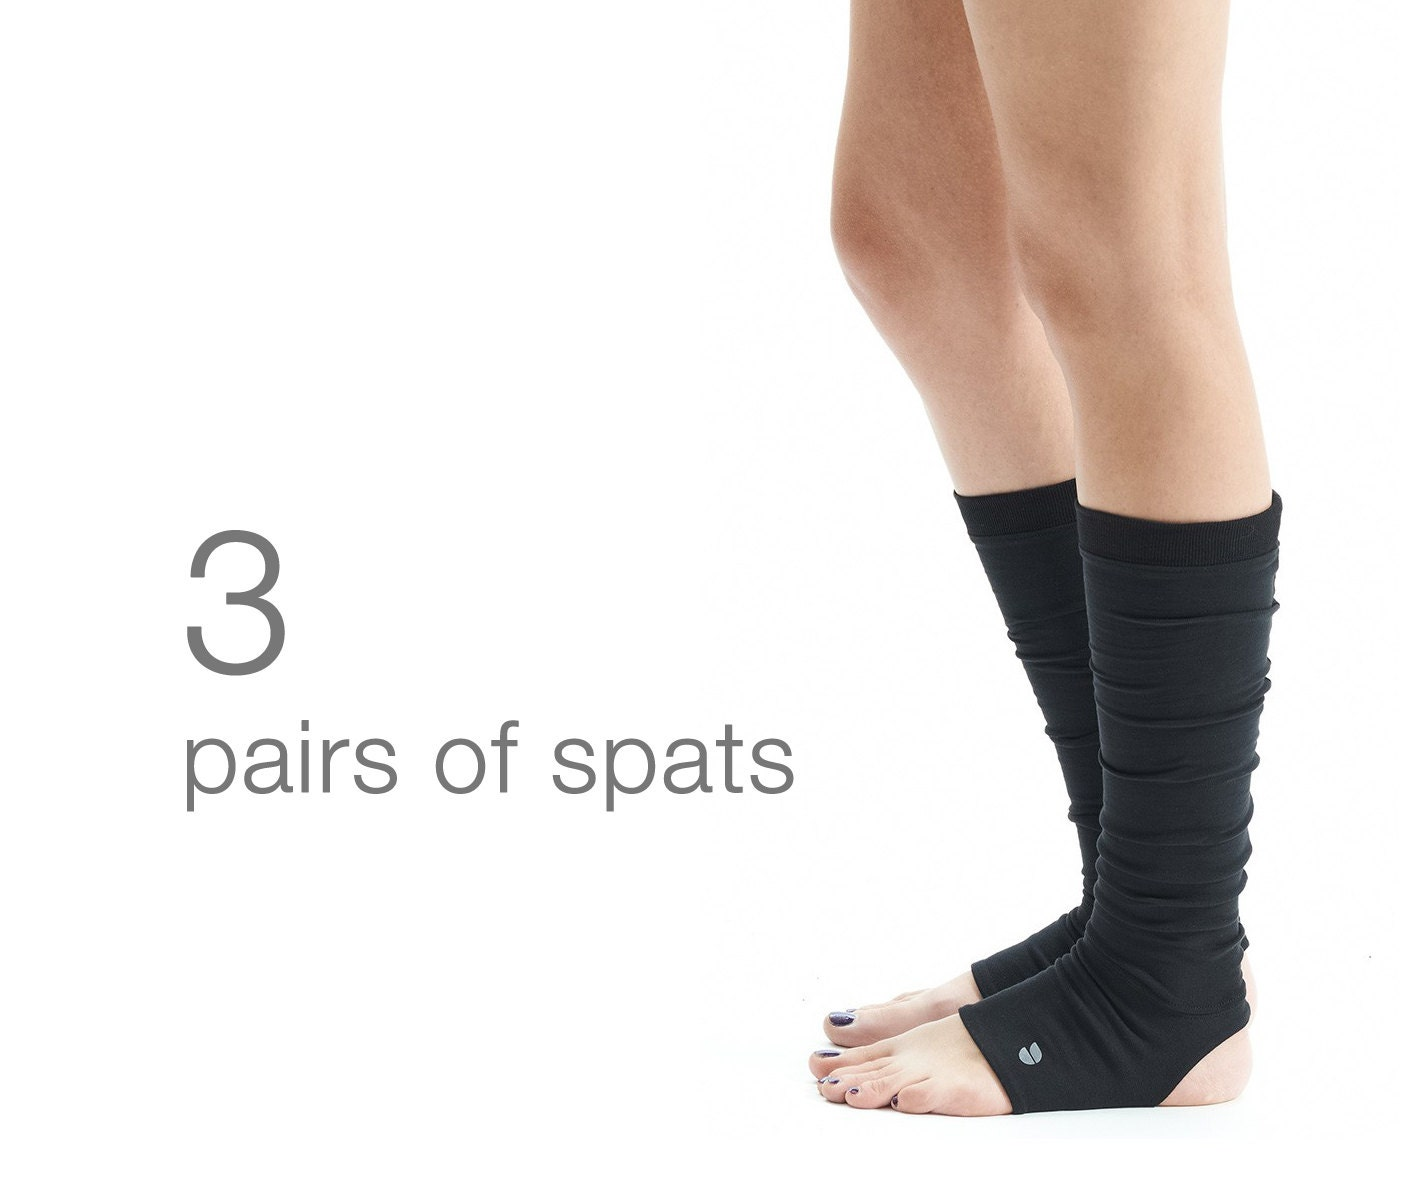 Spats, Gaiters, Puttees – Vintage Shoes Covers Set Of 3 Pairs Yoga Spats Accessory Socks Unisex Leg Warmers By Aryasense $72.00 AT vintagedancer.com